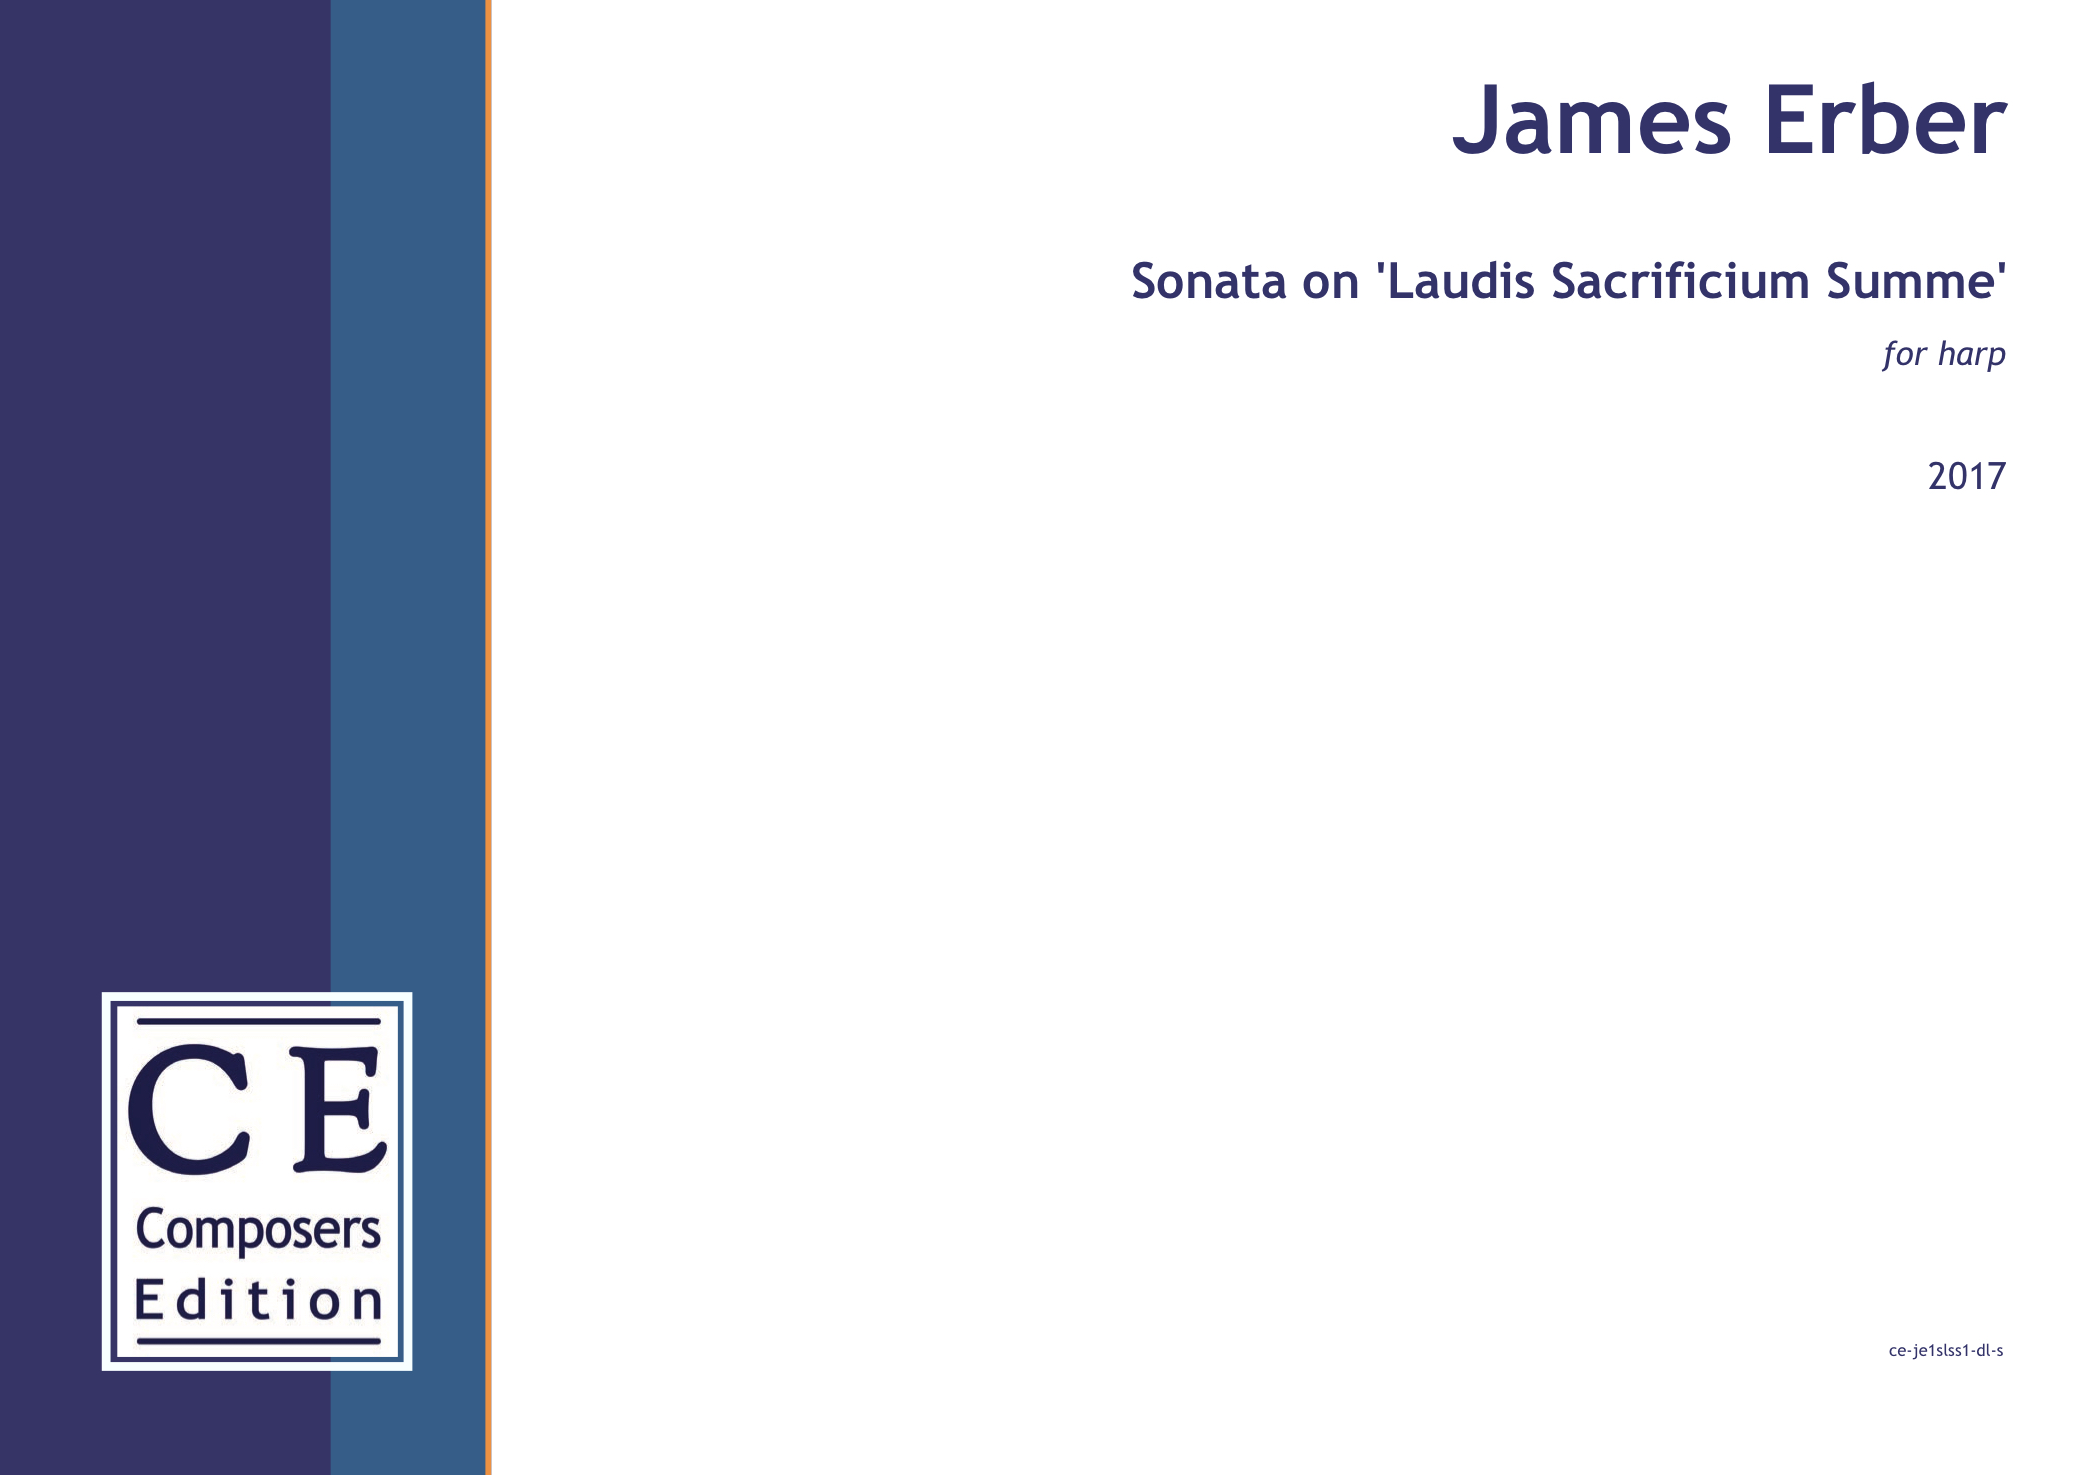 James Erber: Sonata on 'Laudis Sacrificium Summe' for harp